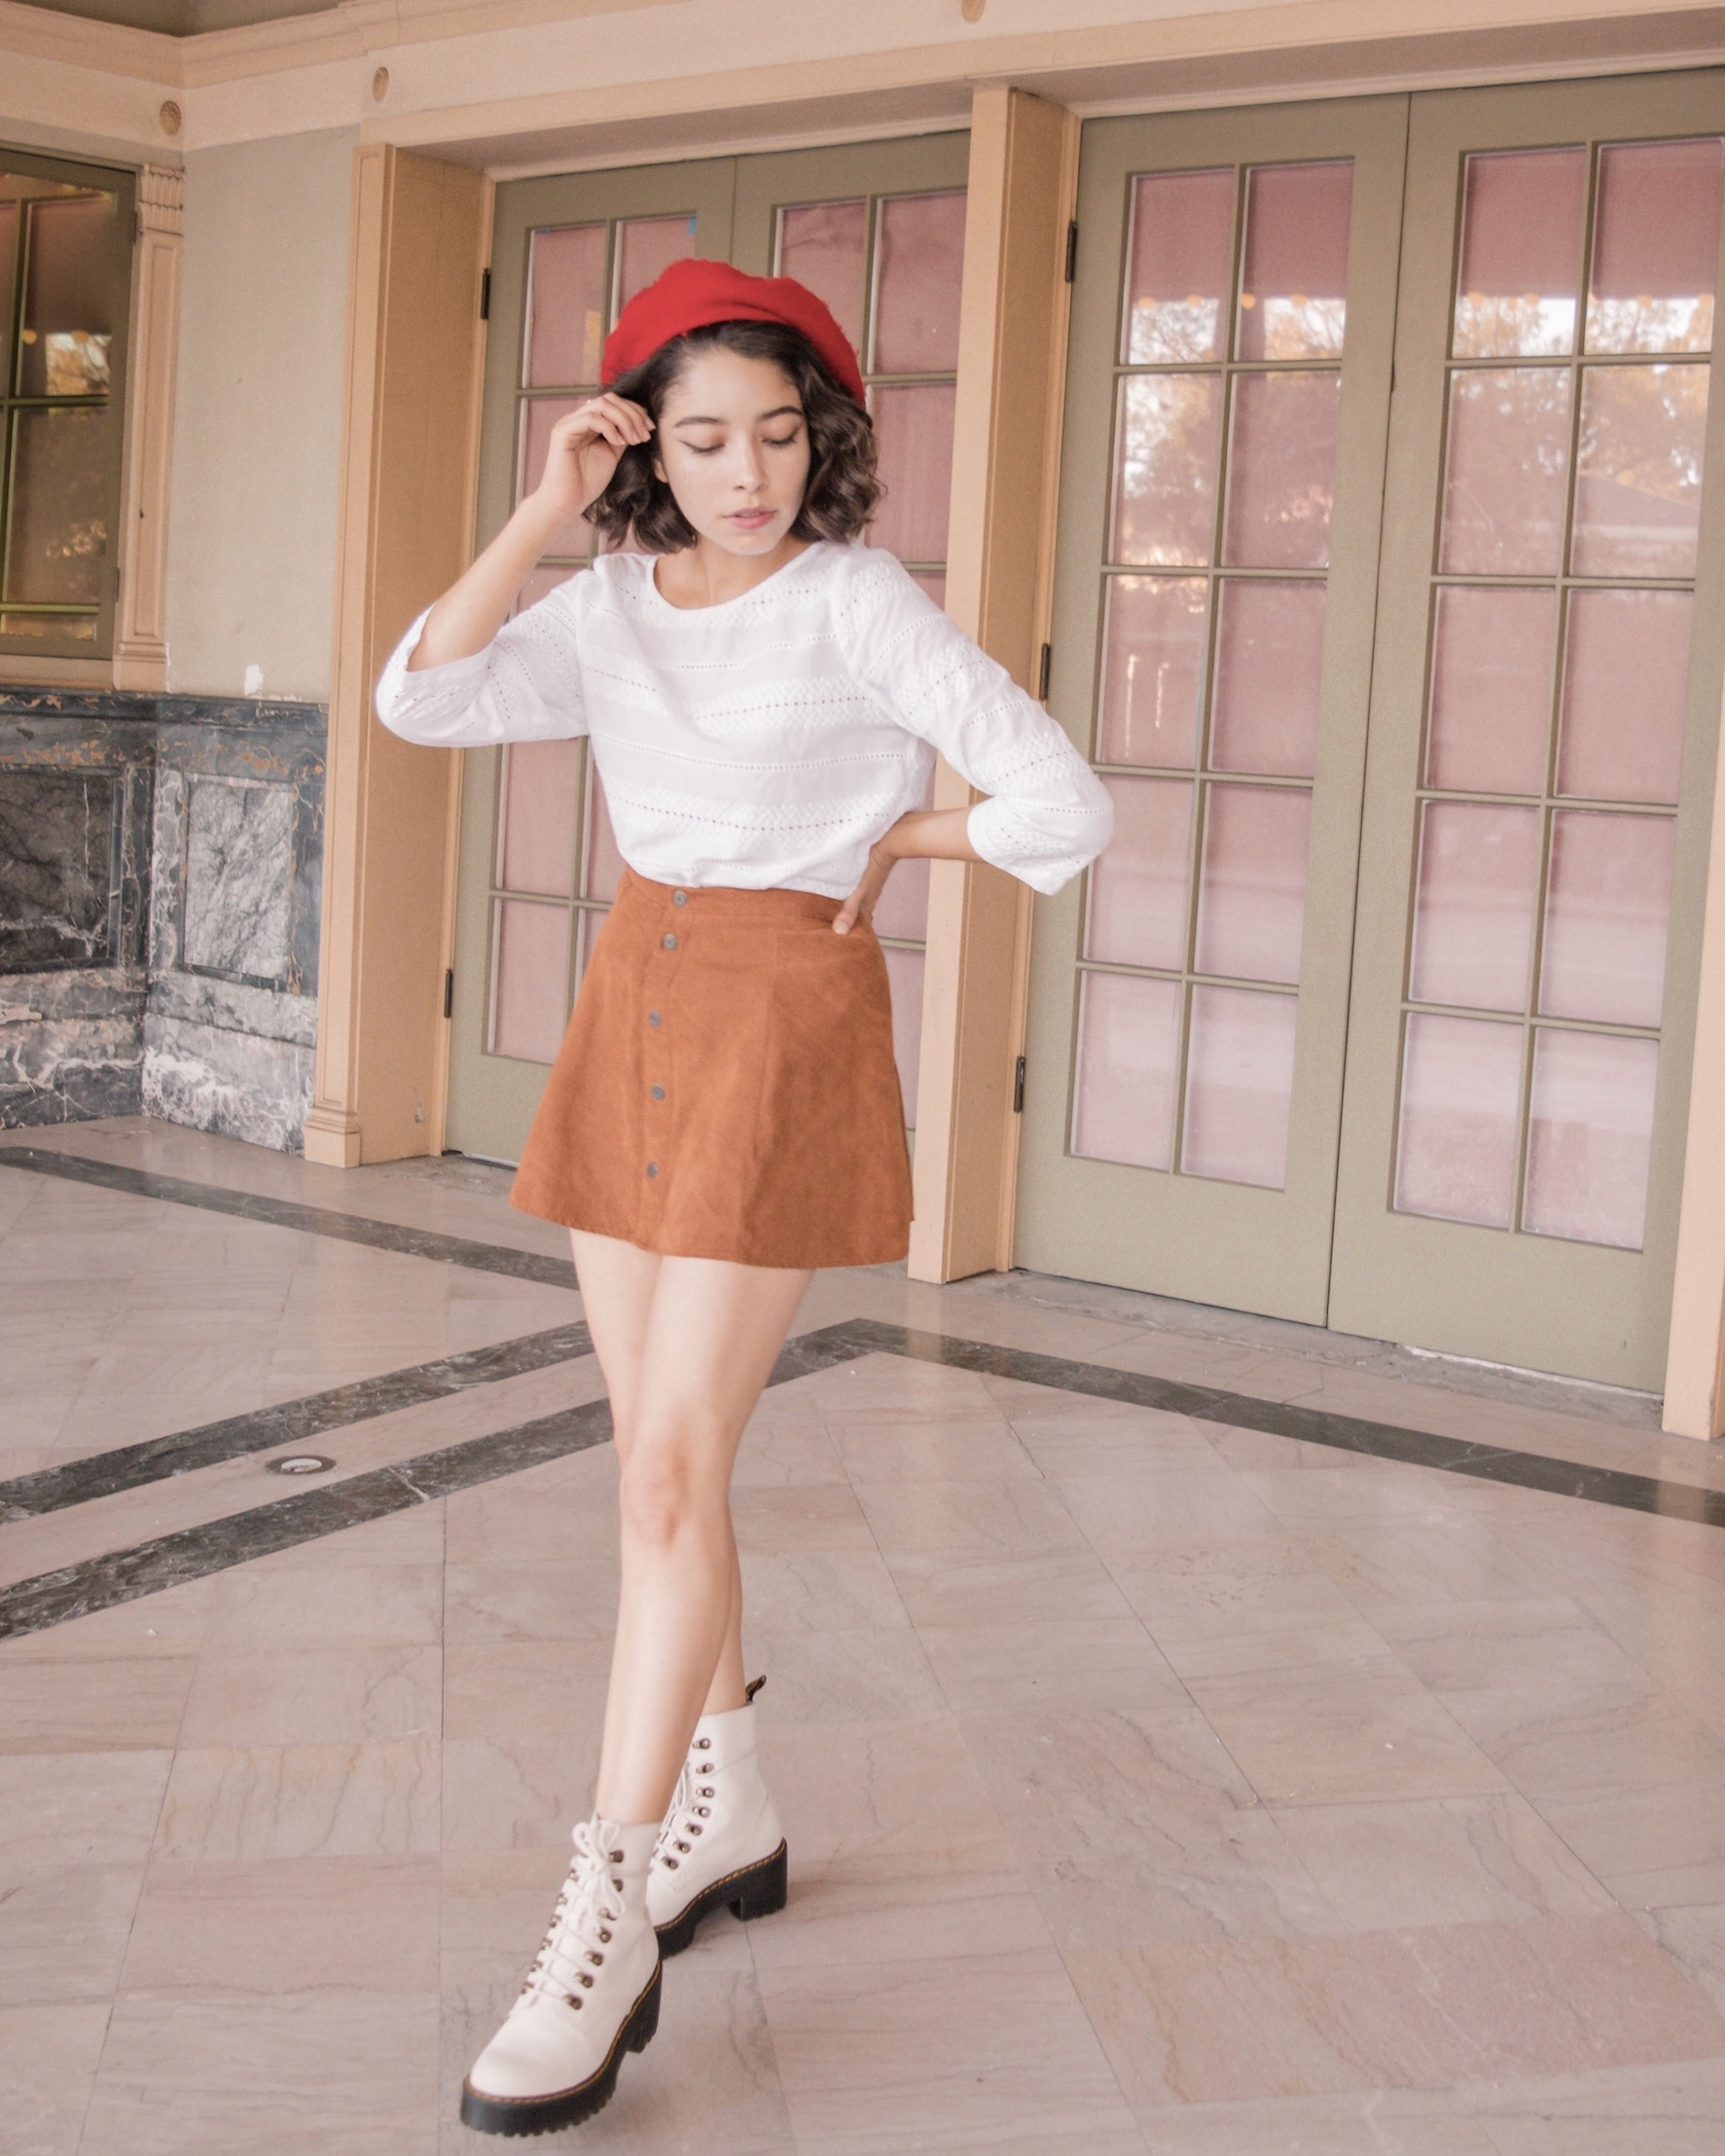 Red beret cute and casual outfit // A Week Of Self-Expressive Outfits With Aja Duran From Aja With Love on The Good Trade